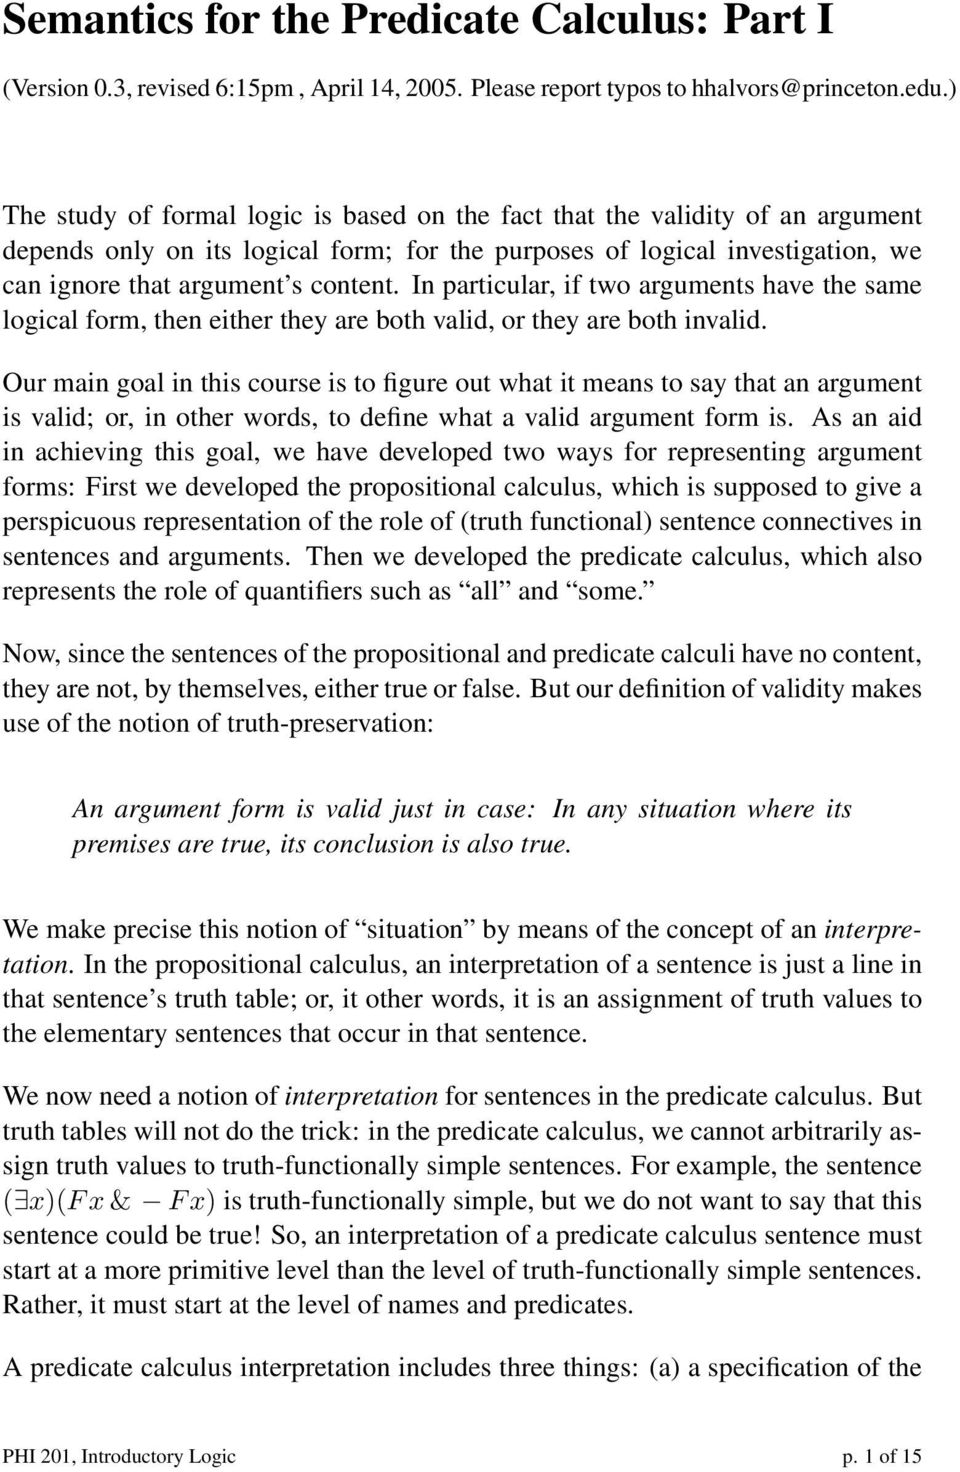 In particular, if two arguments have the same logical form, then either they are both valid, or they are both invalid.